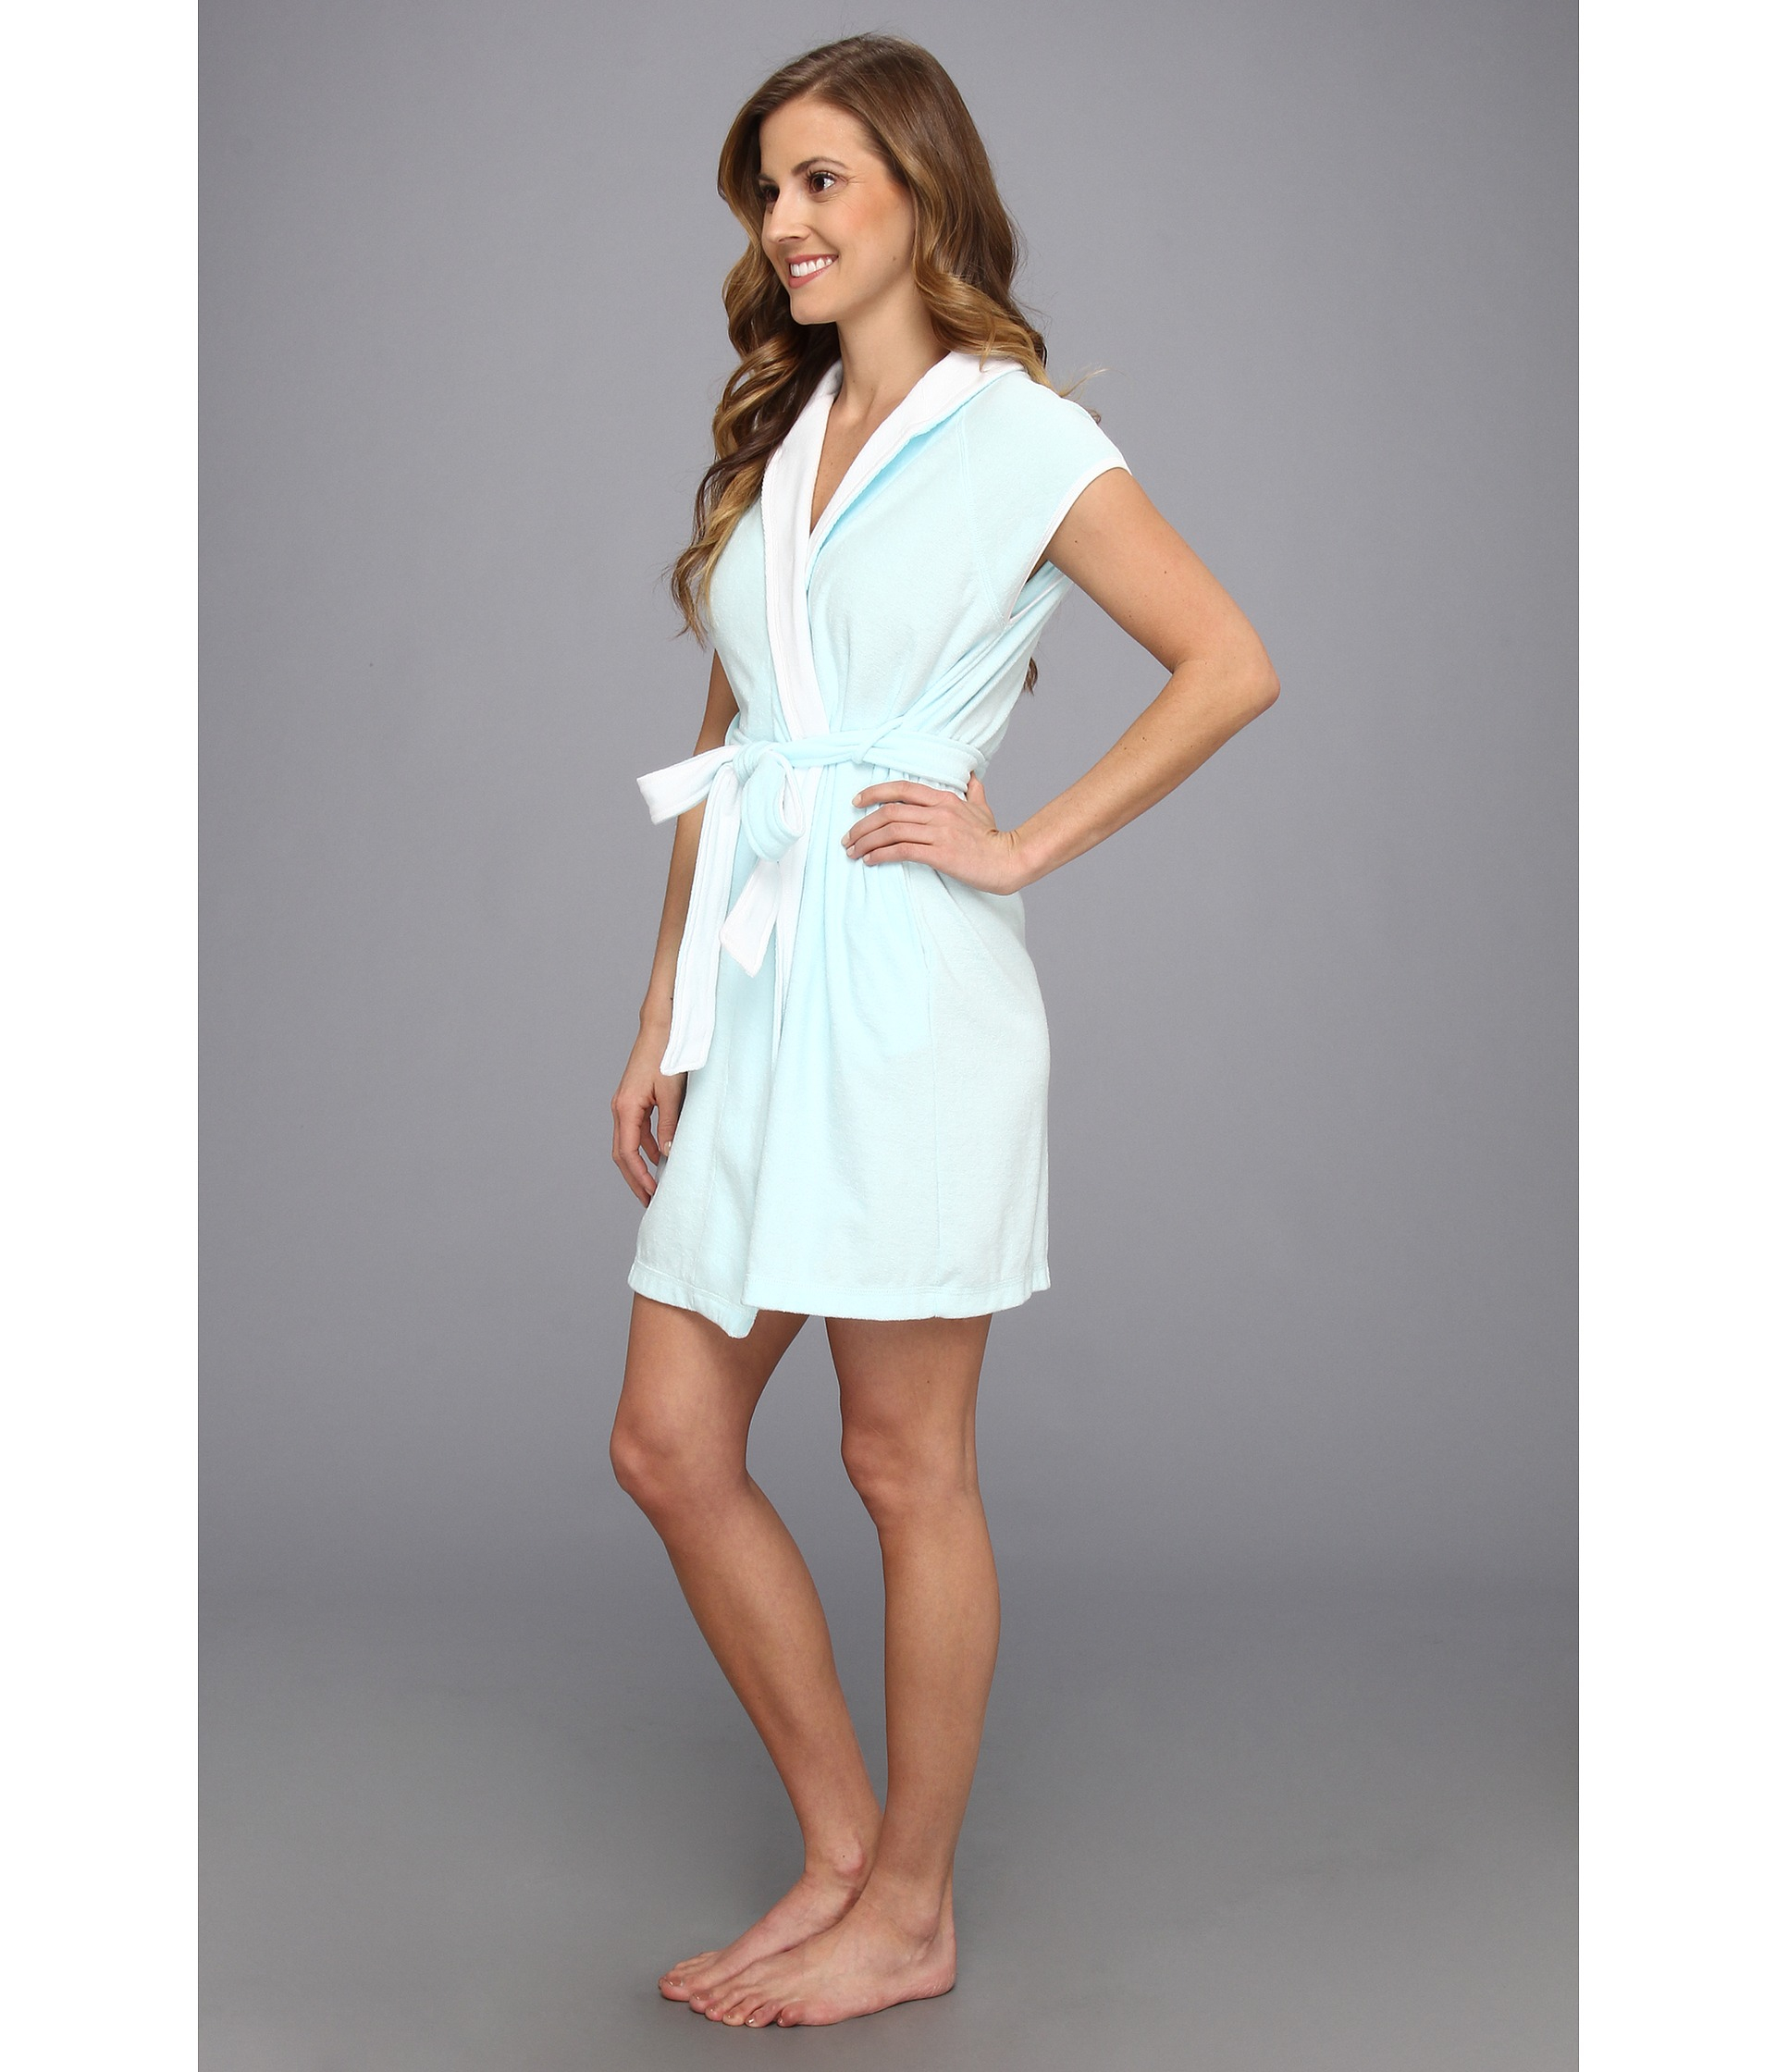 Lyst Betsey Johnson Baby Terry Wifey Bridal Robe in Blue